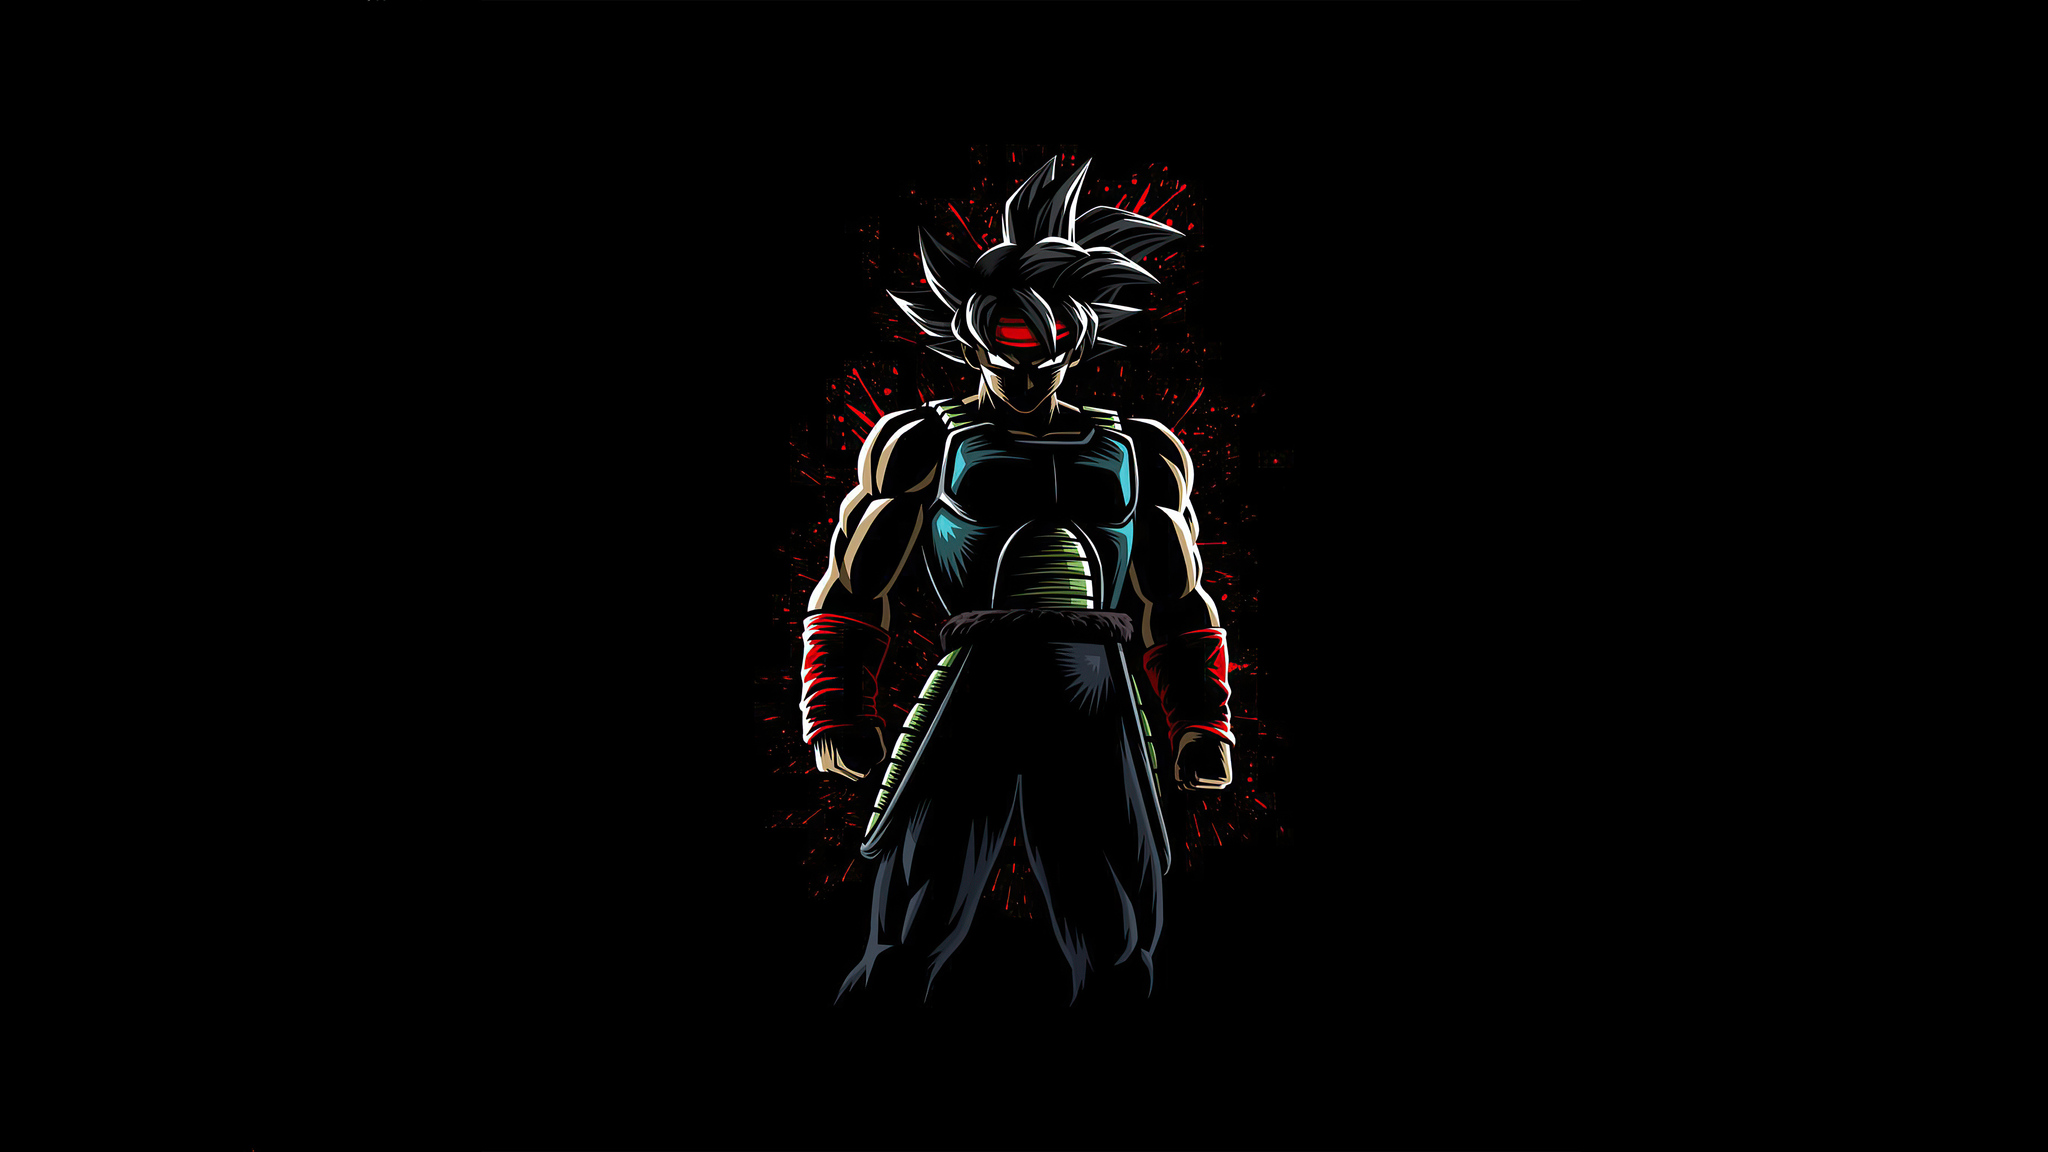 2048x1152 Bardock Paint Splatter Dragon Ball Z 2048x1152 Resolution Hd 4k Wallpapers Images Backgrounds Photos And Pictures